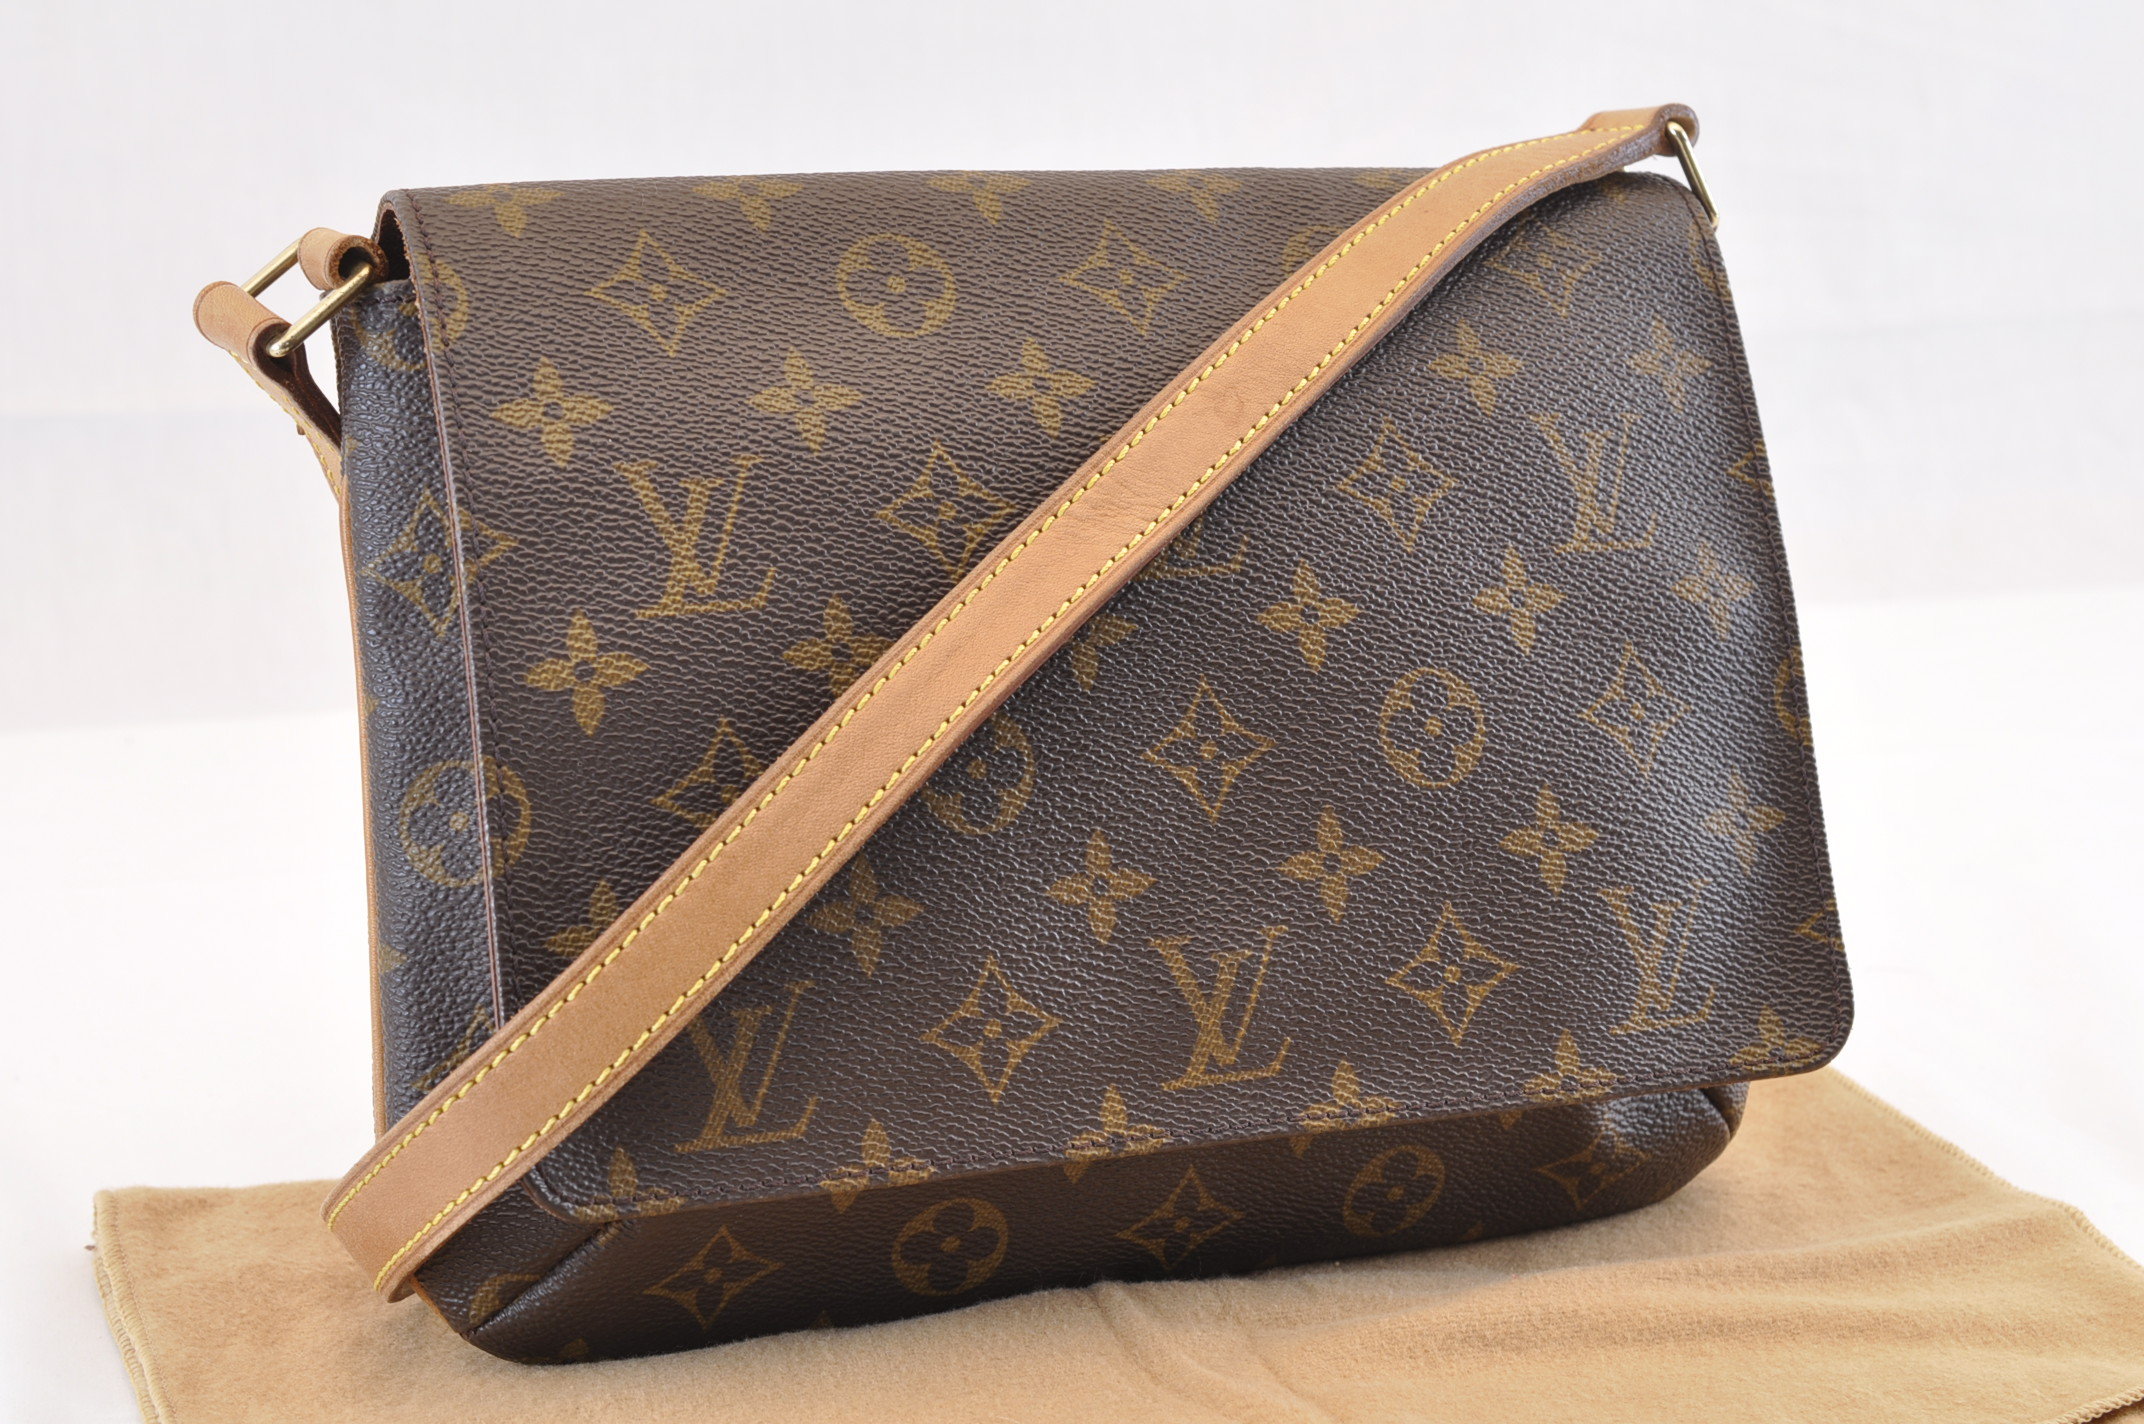 700a78a899f4 LOUIS VUITTON Monogram Musette Tango Short Shoulder Bag M51257 Auth ...